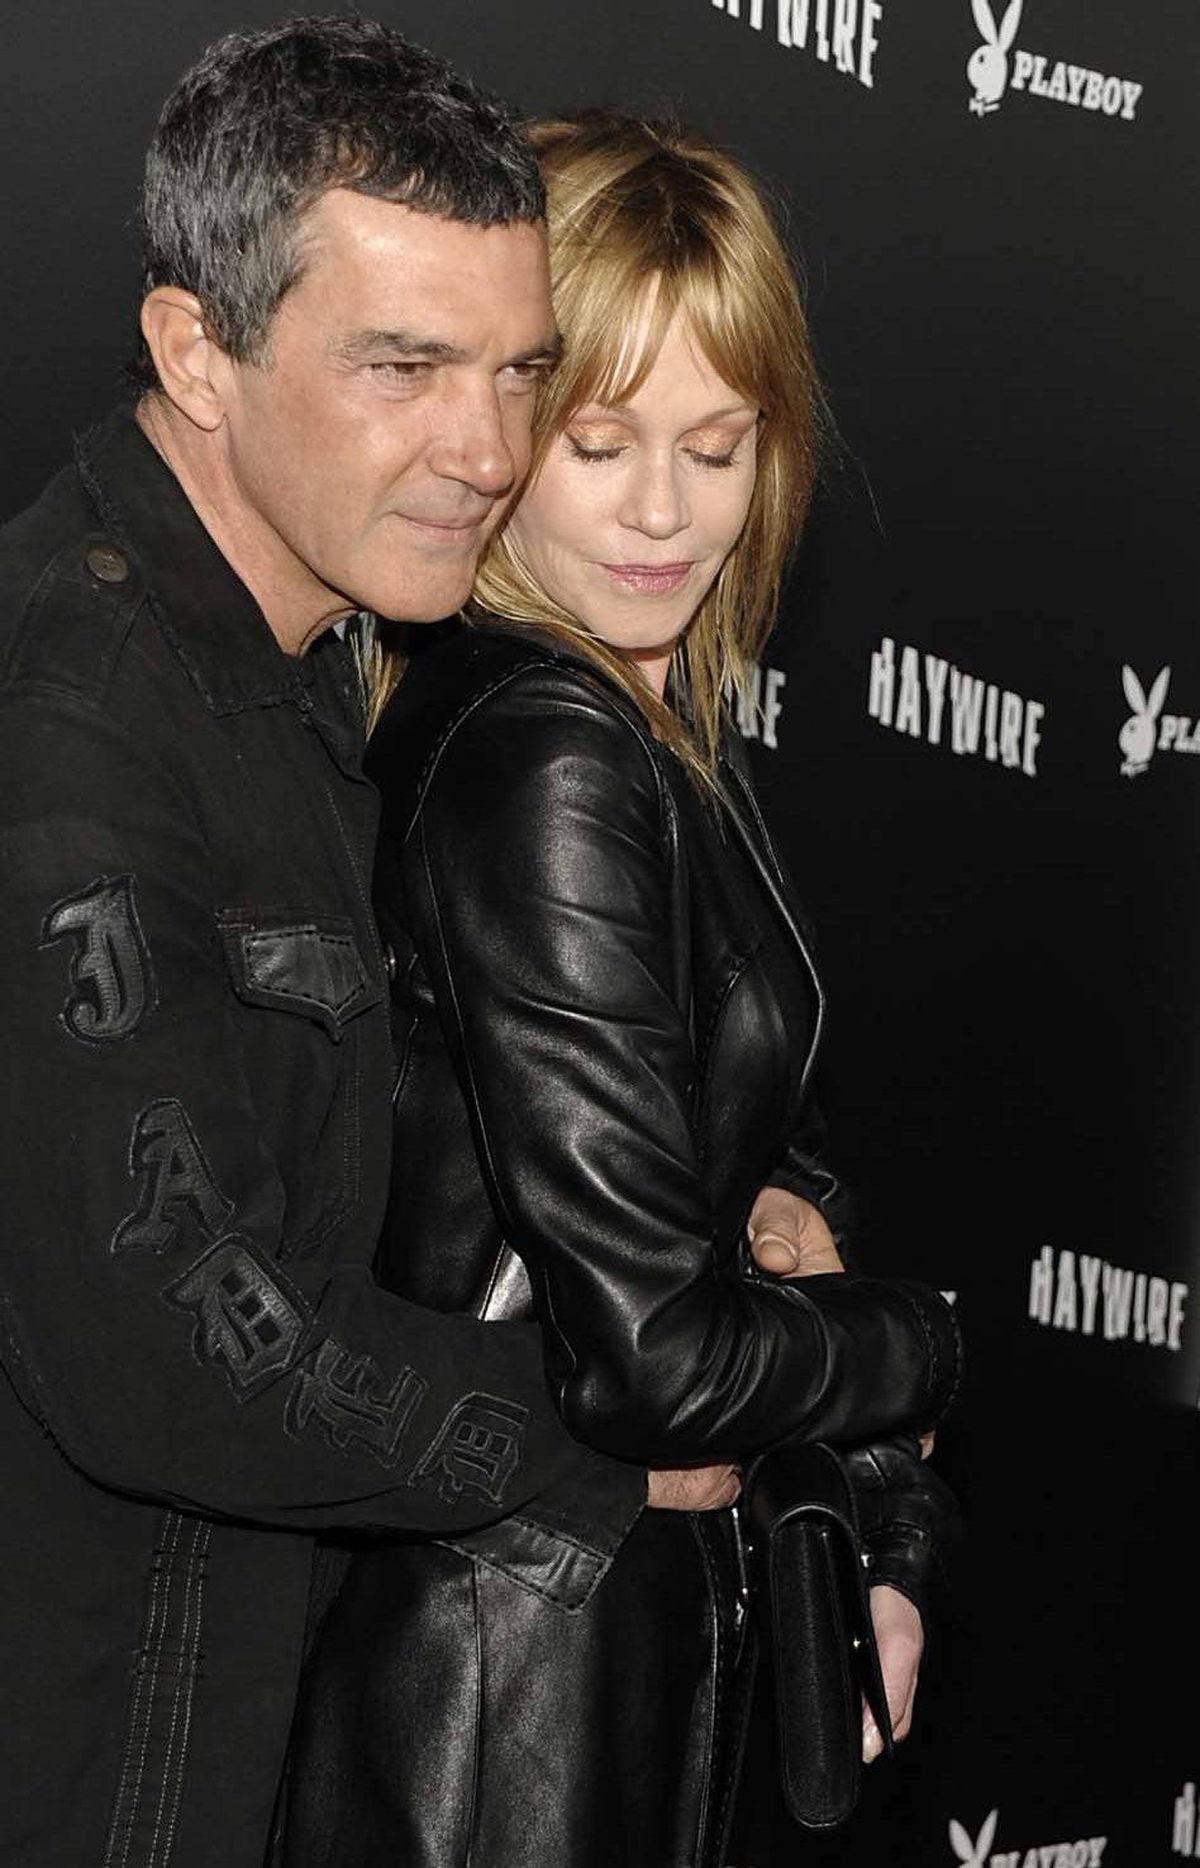 """Antonio Banderas poses for photos on the red carpet for the film """"Haywire"""" in Los Angeles last week while his wife Melanie Griffith takes one of her """"naps."""""""